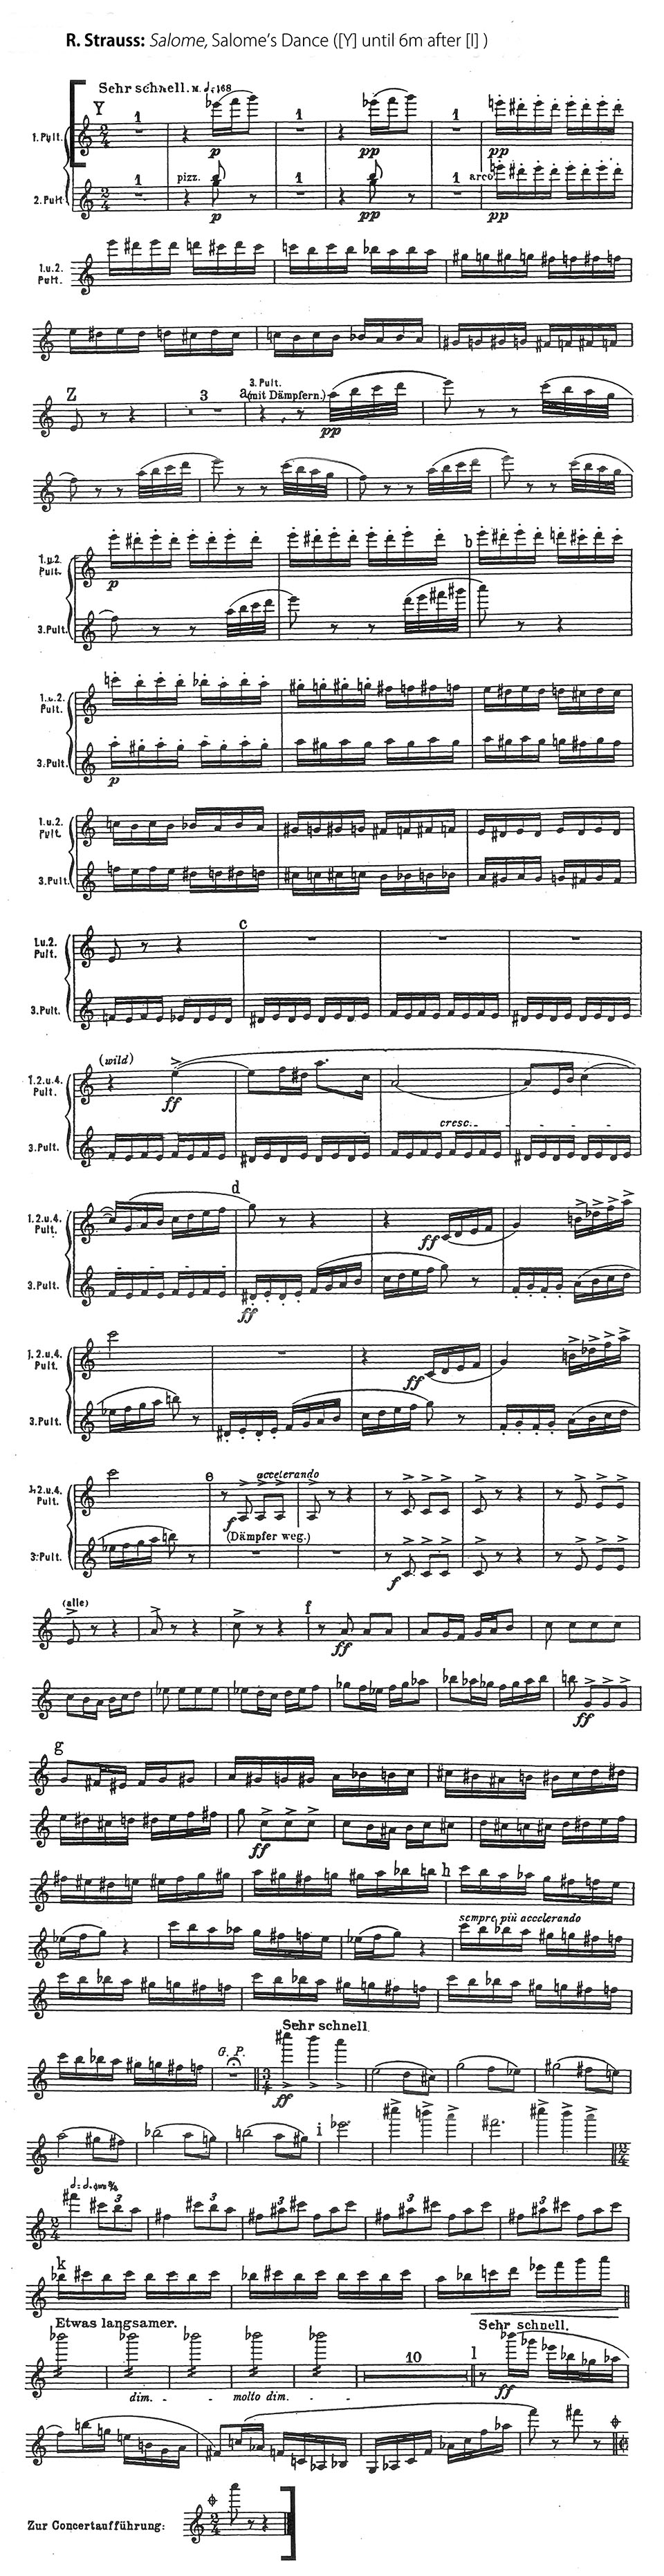 strauss-salome-dance-violin-orchestra-audition-excerpt